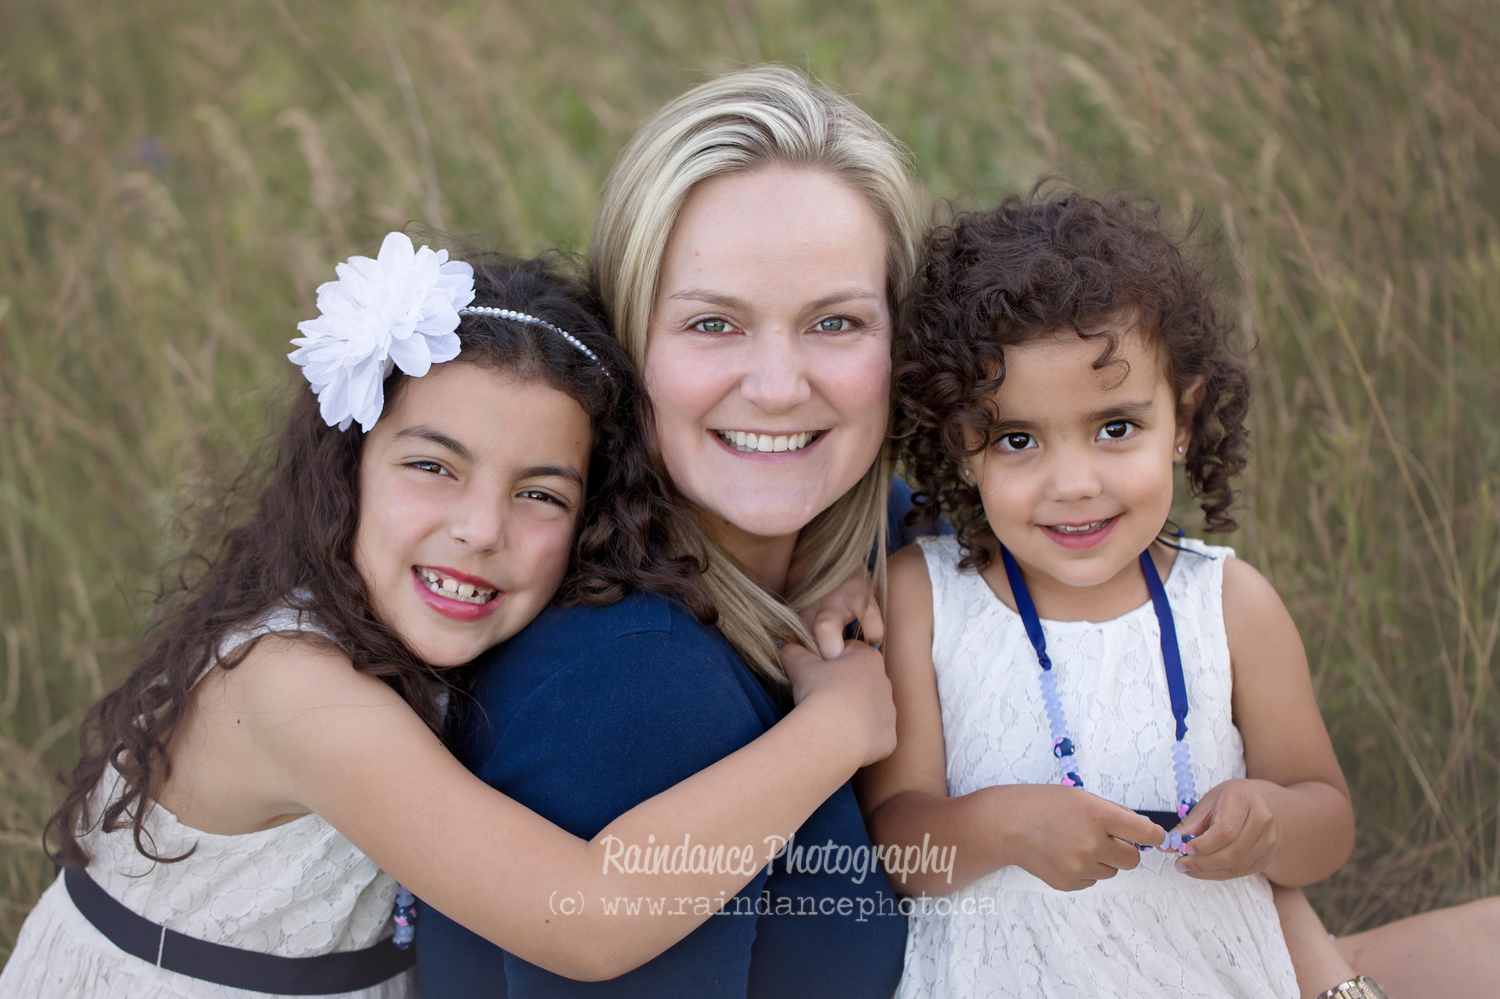 Kalimootoo - Barrie Family and Child Photographer 6